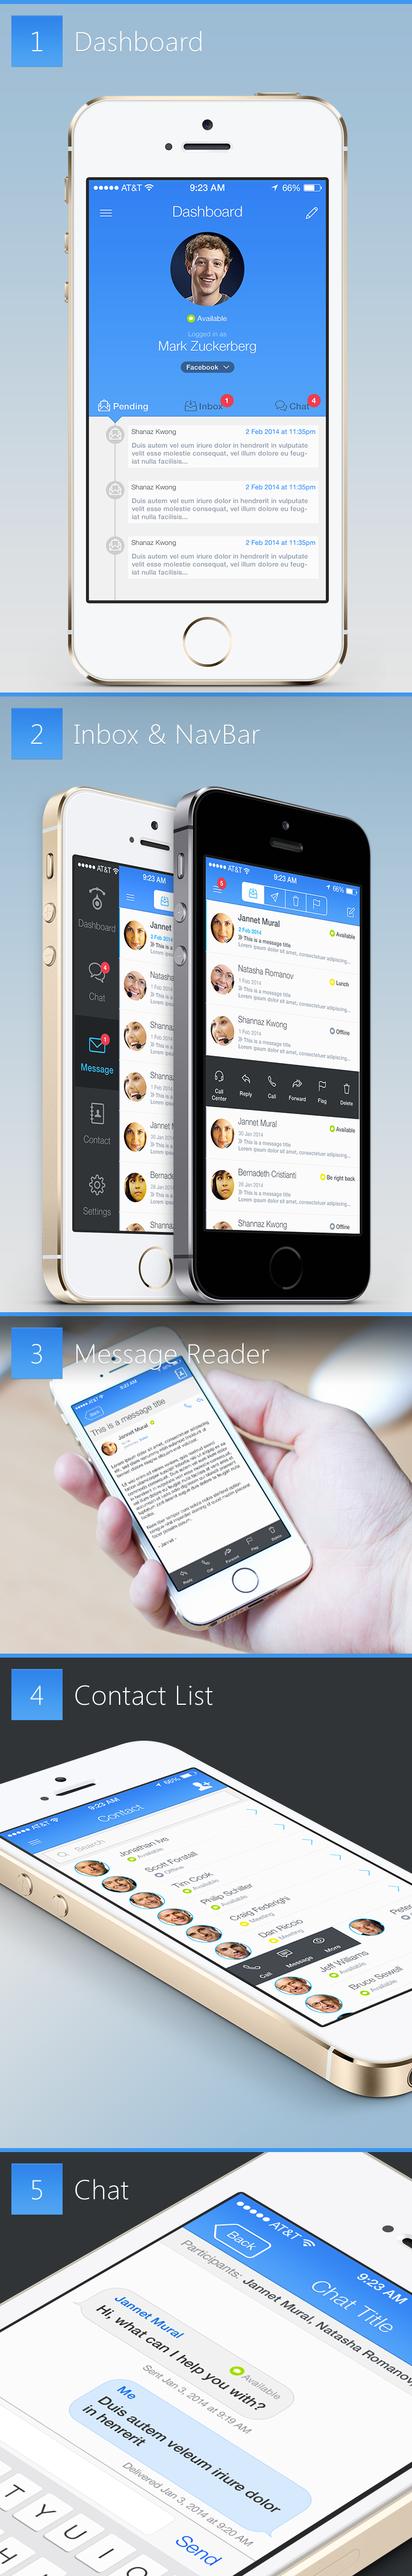 User interface (UI) design for business/messaging application